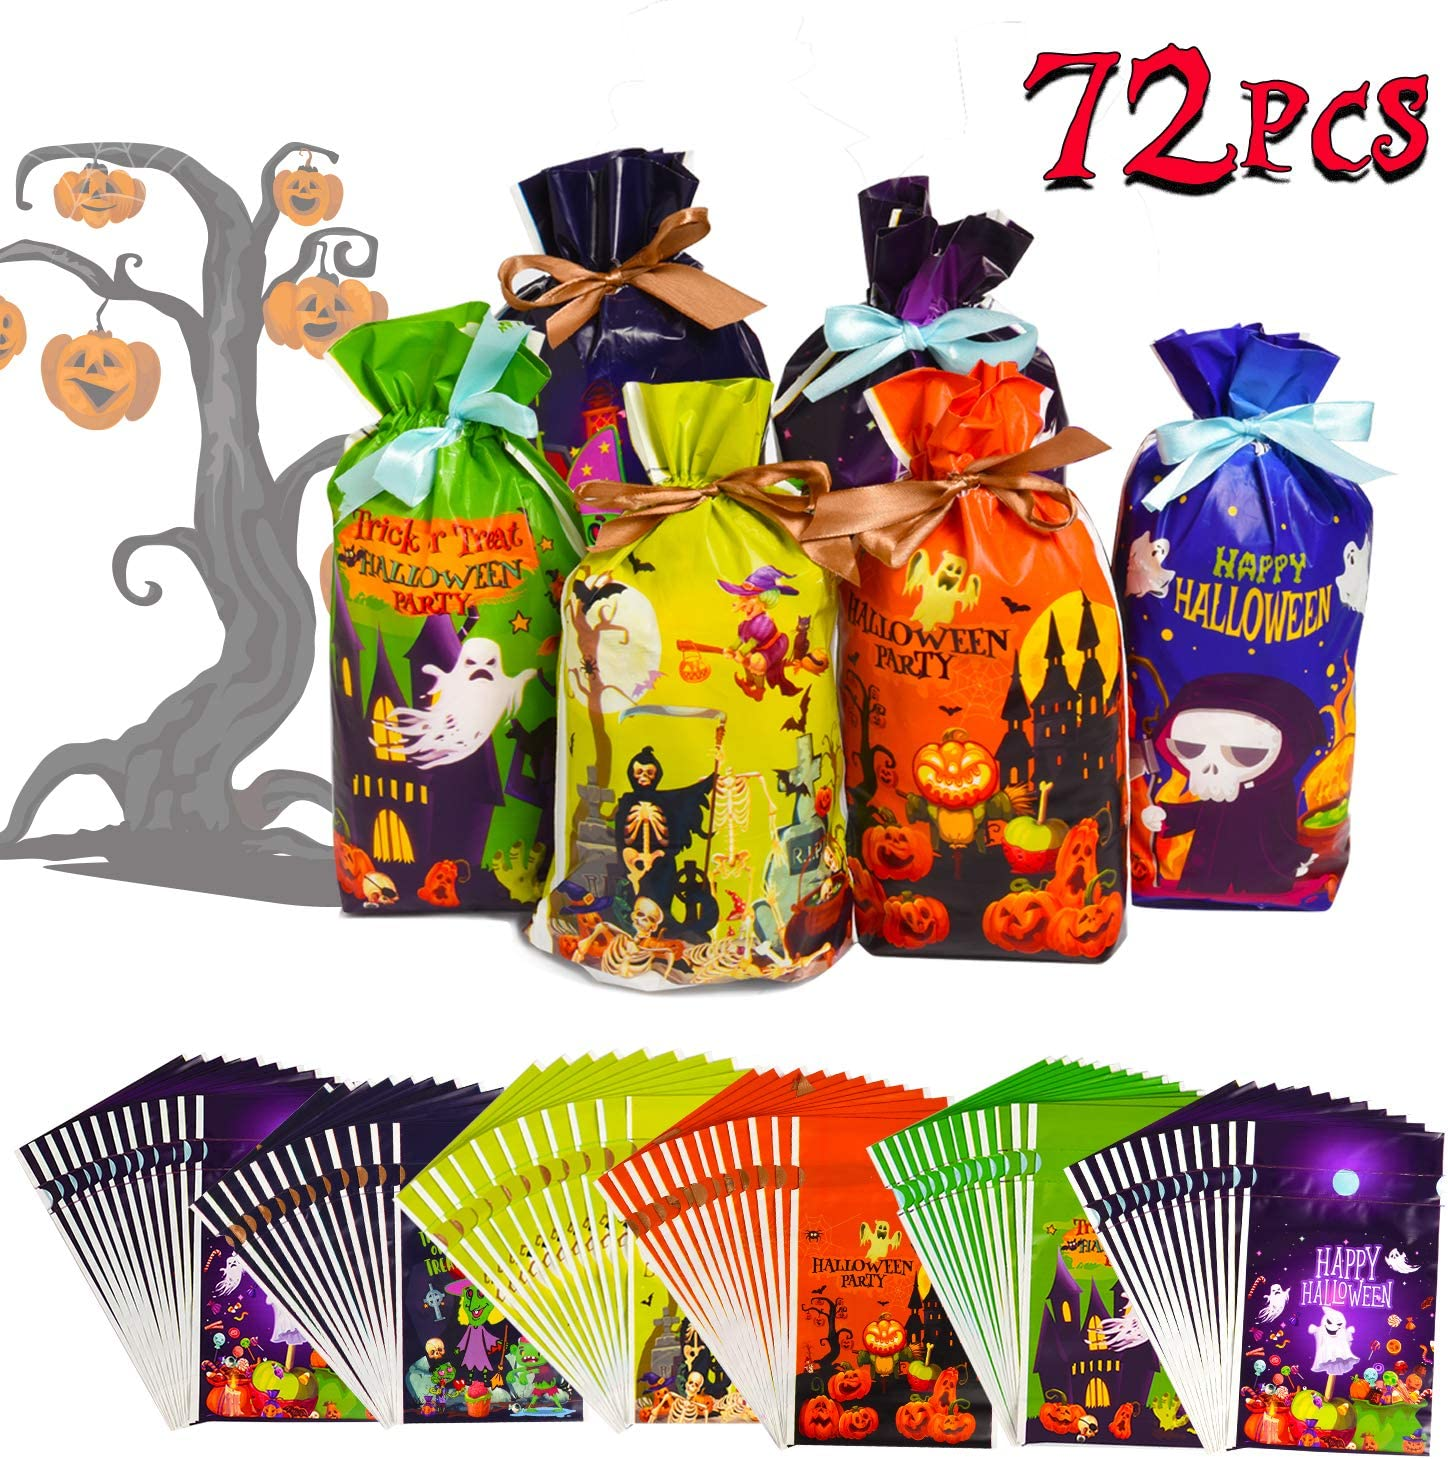 Halloween Goodie Bags 6 Designs Halloween Party Favors Party Supplies Halloween Decorations Drawstring Bags Halloween Trick or Treat Bags Joyjoz 72 Pcs Halloween Candy Bags